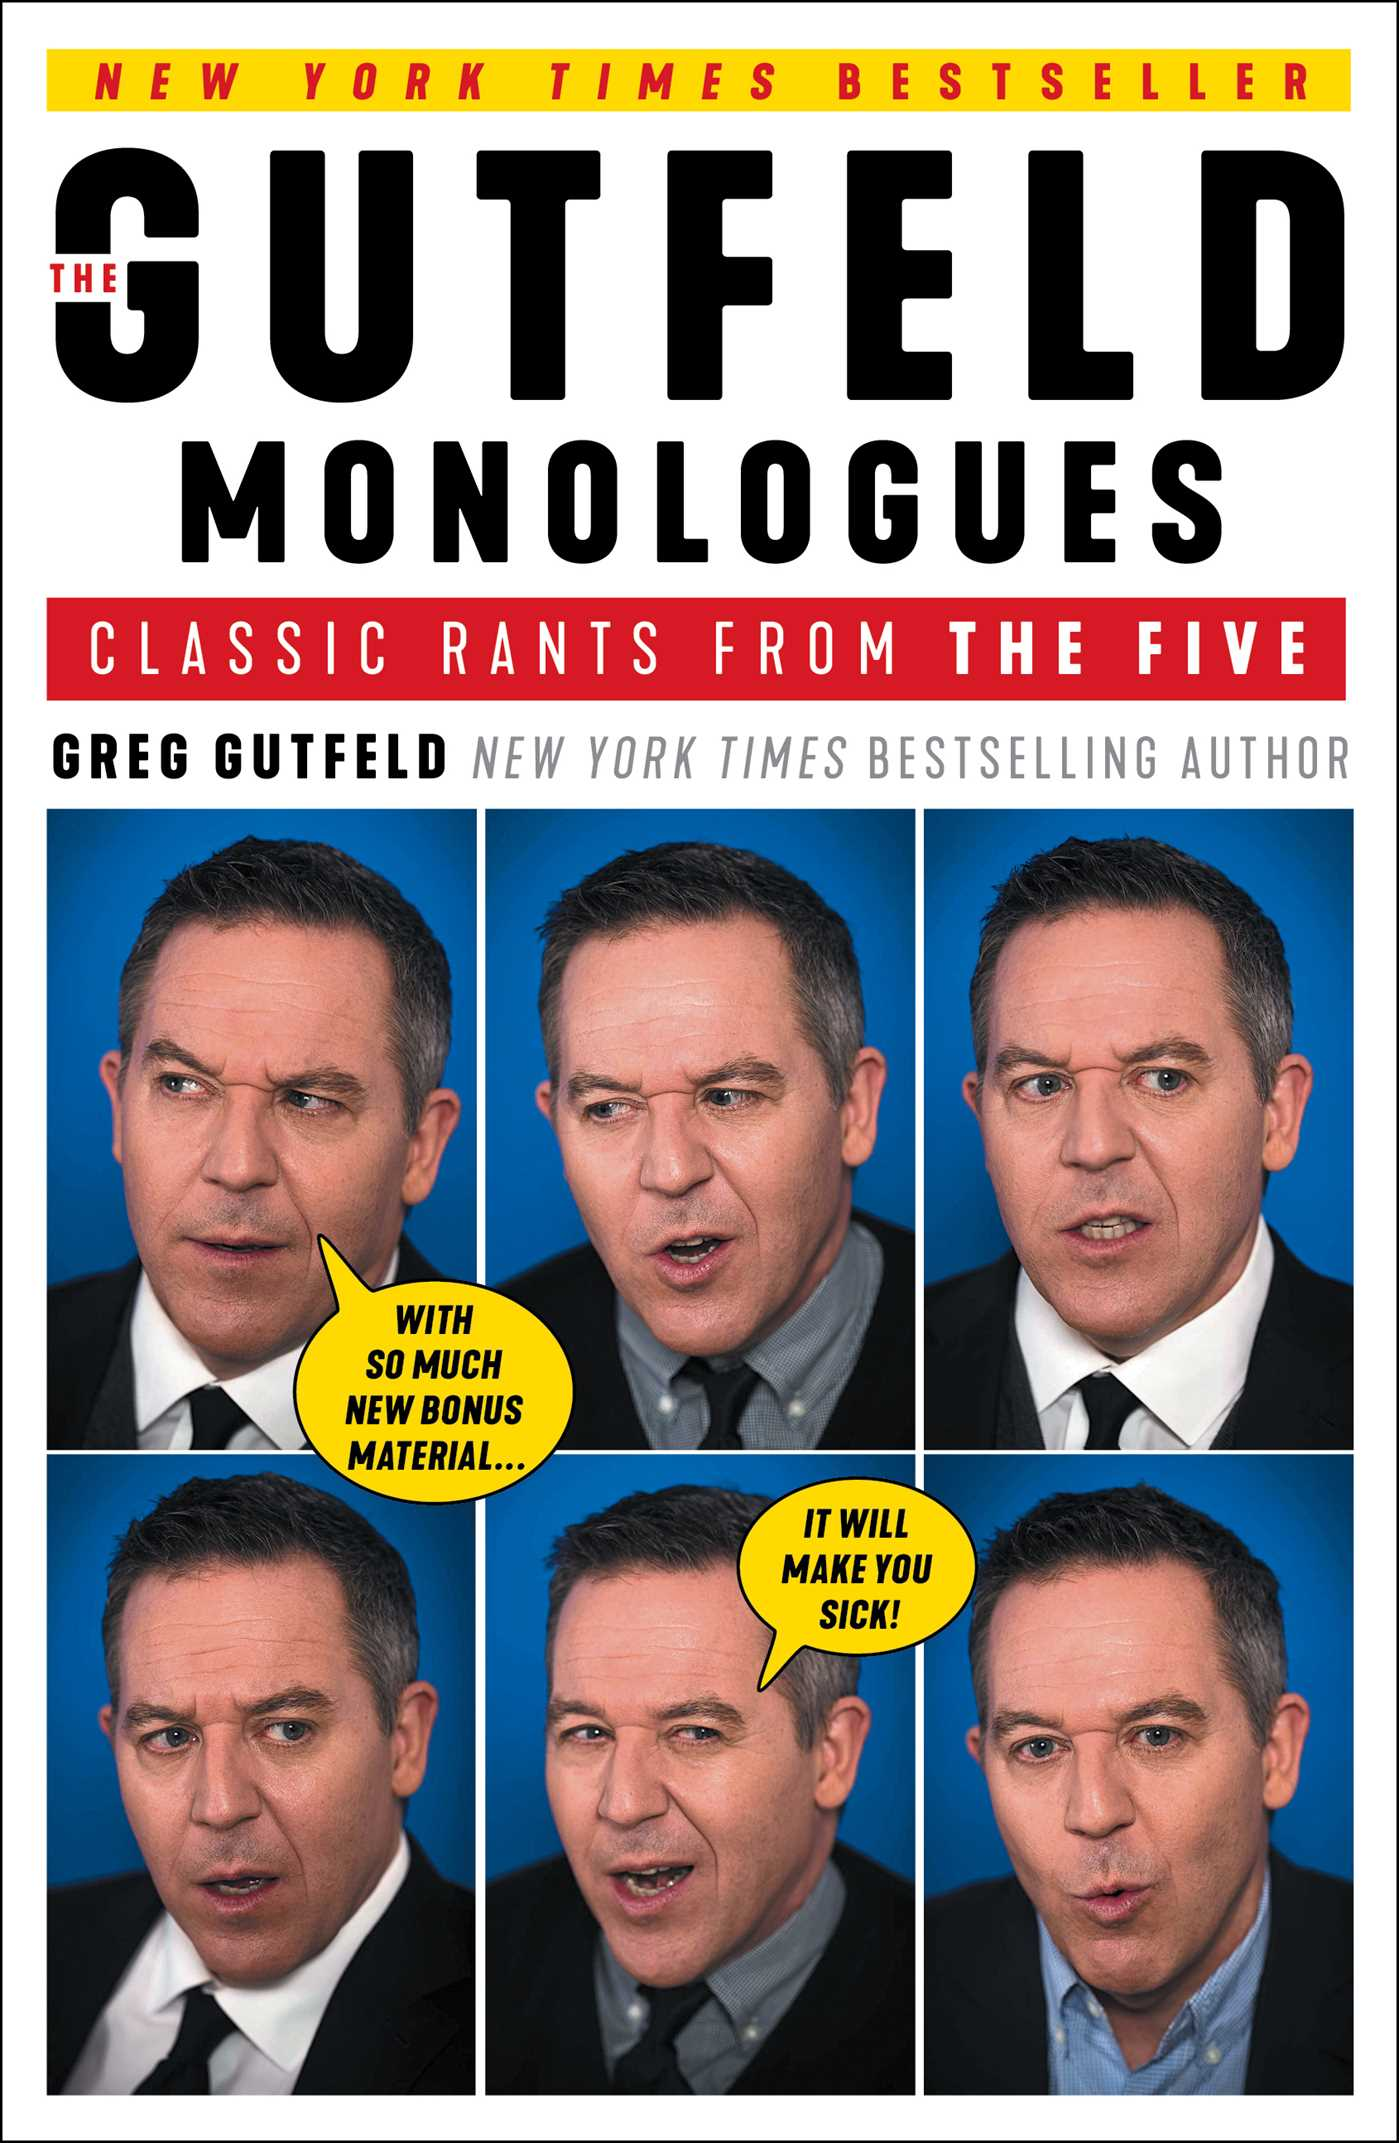 The gutfeld monologues 9781501190728 hr